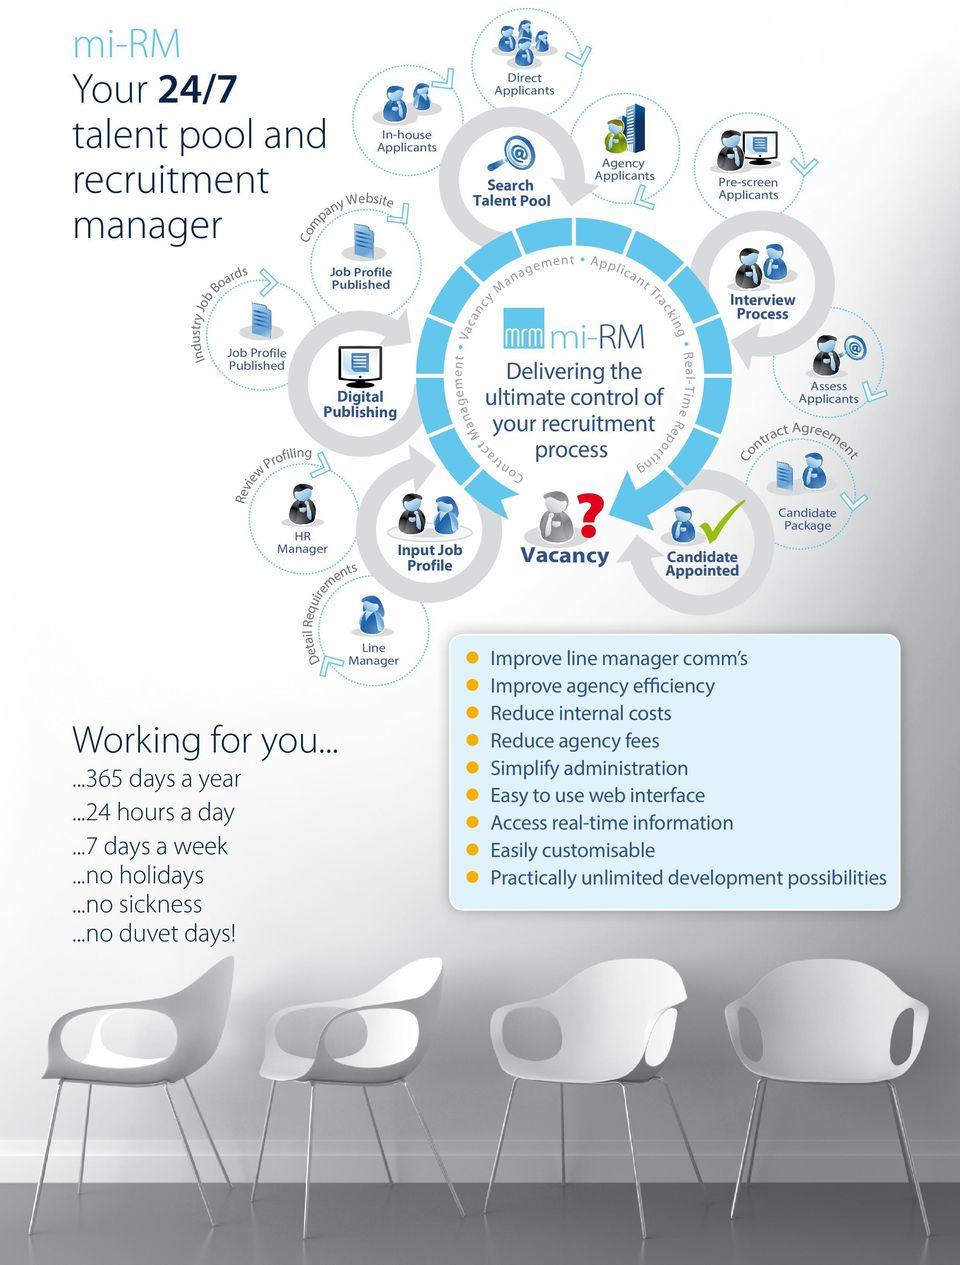 Deivering the utimate coro of your recruitme process Ierview Process Rea-Time R e w mi-rm ing Digita Pubishing T ck Job Profie Pubished Pre-screen Appicas Co Website ny pa Agency Appicas ra Industry